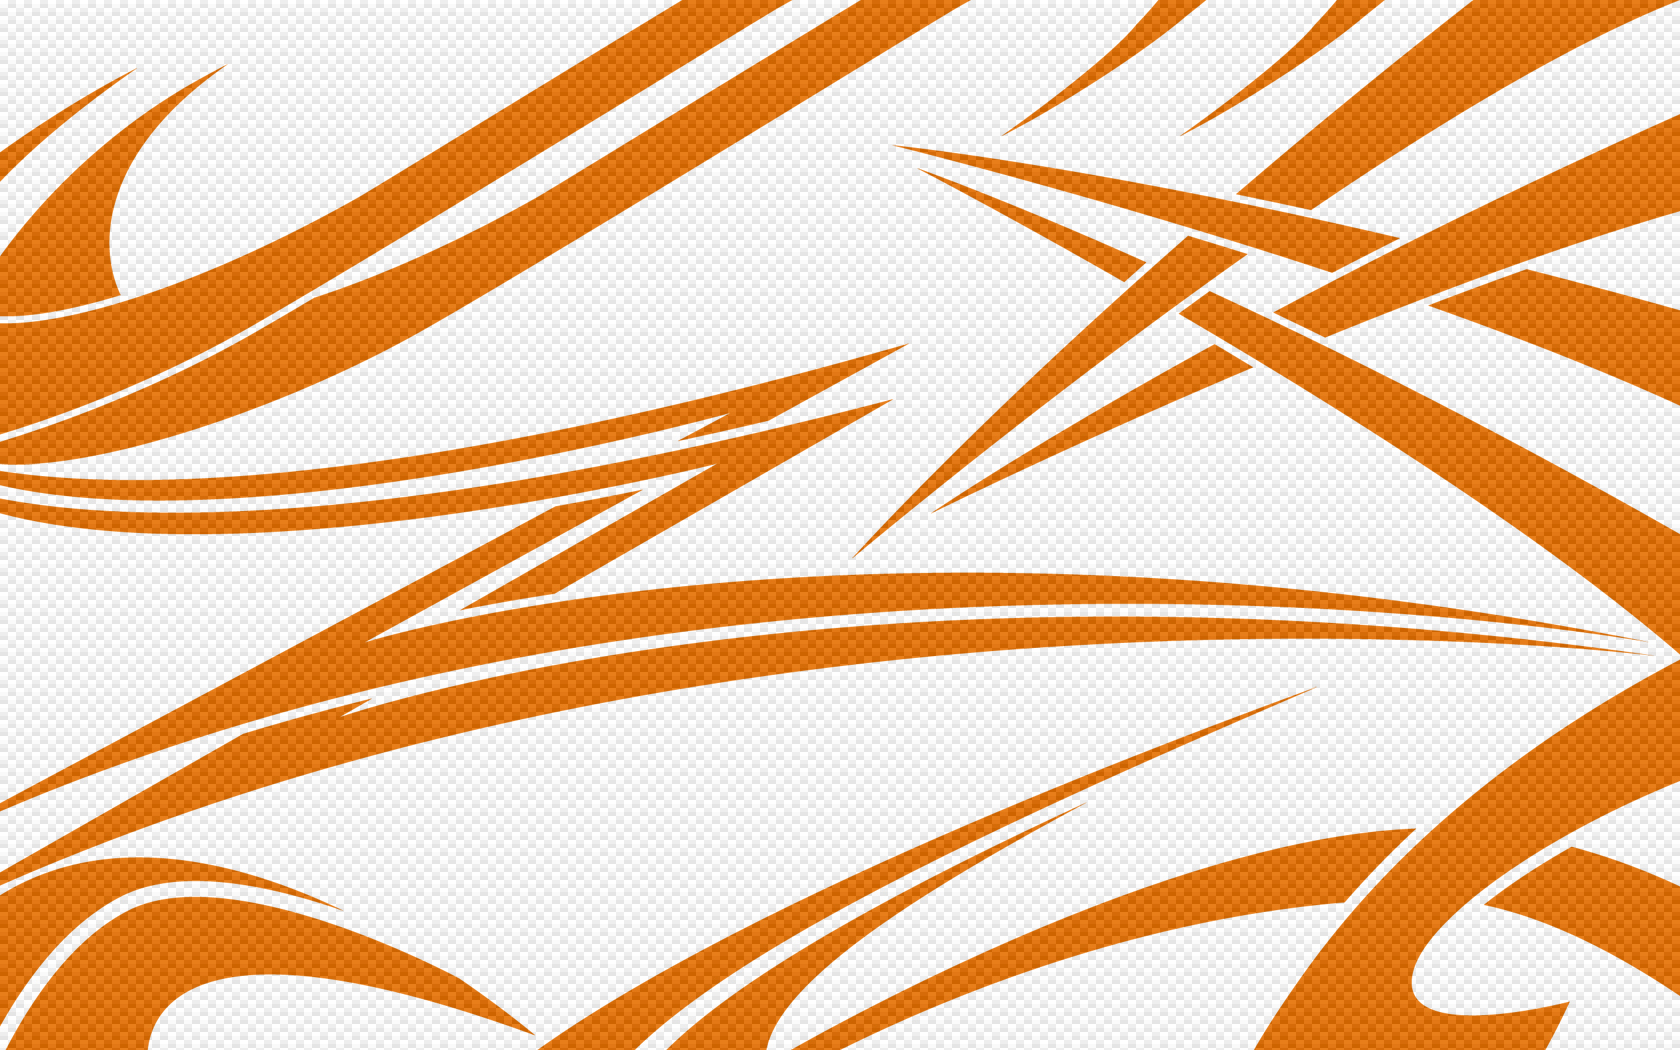 wallpaperstocknet1680x1050 White Orange 1680x1050